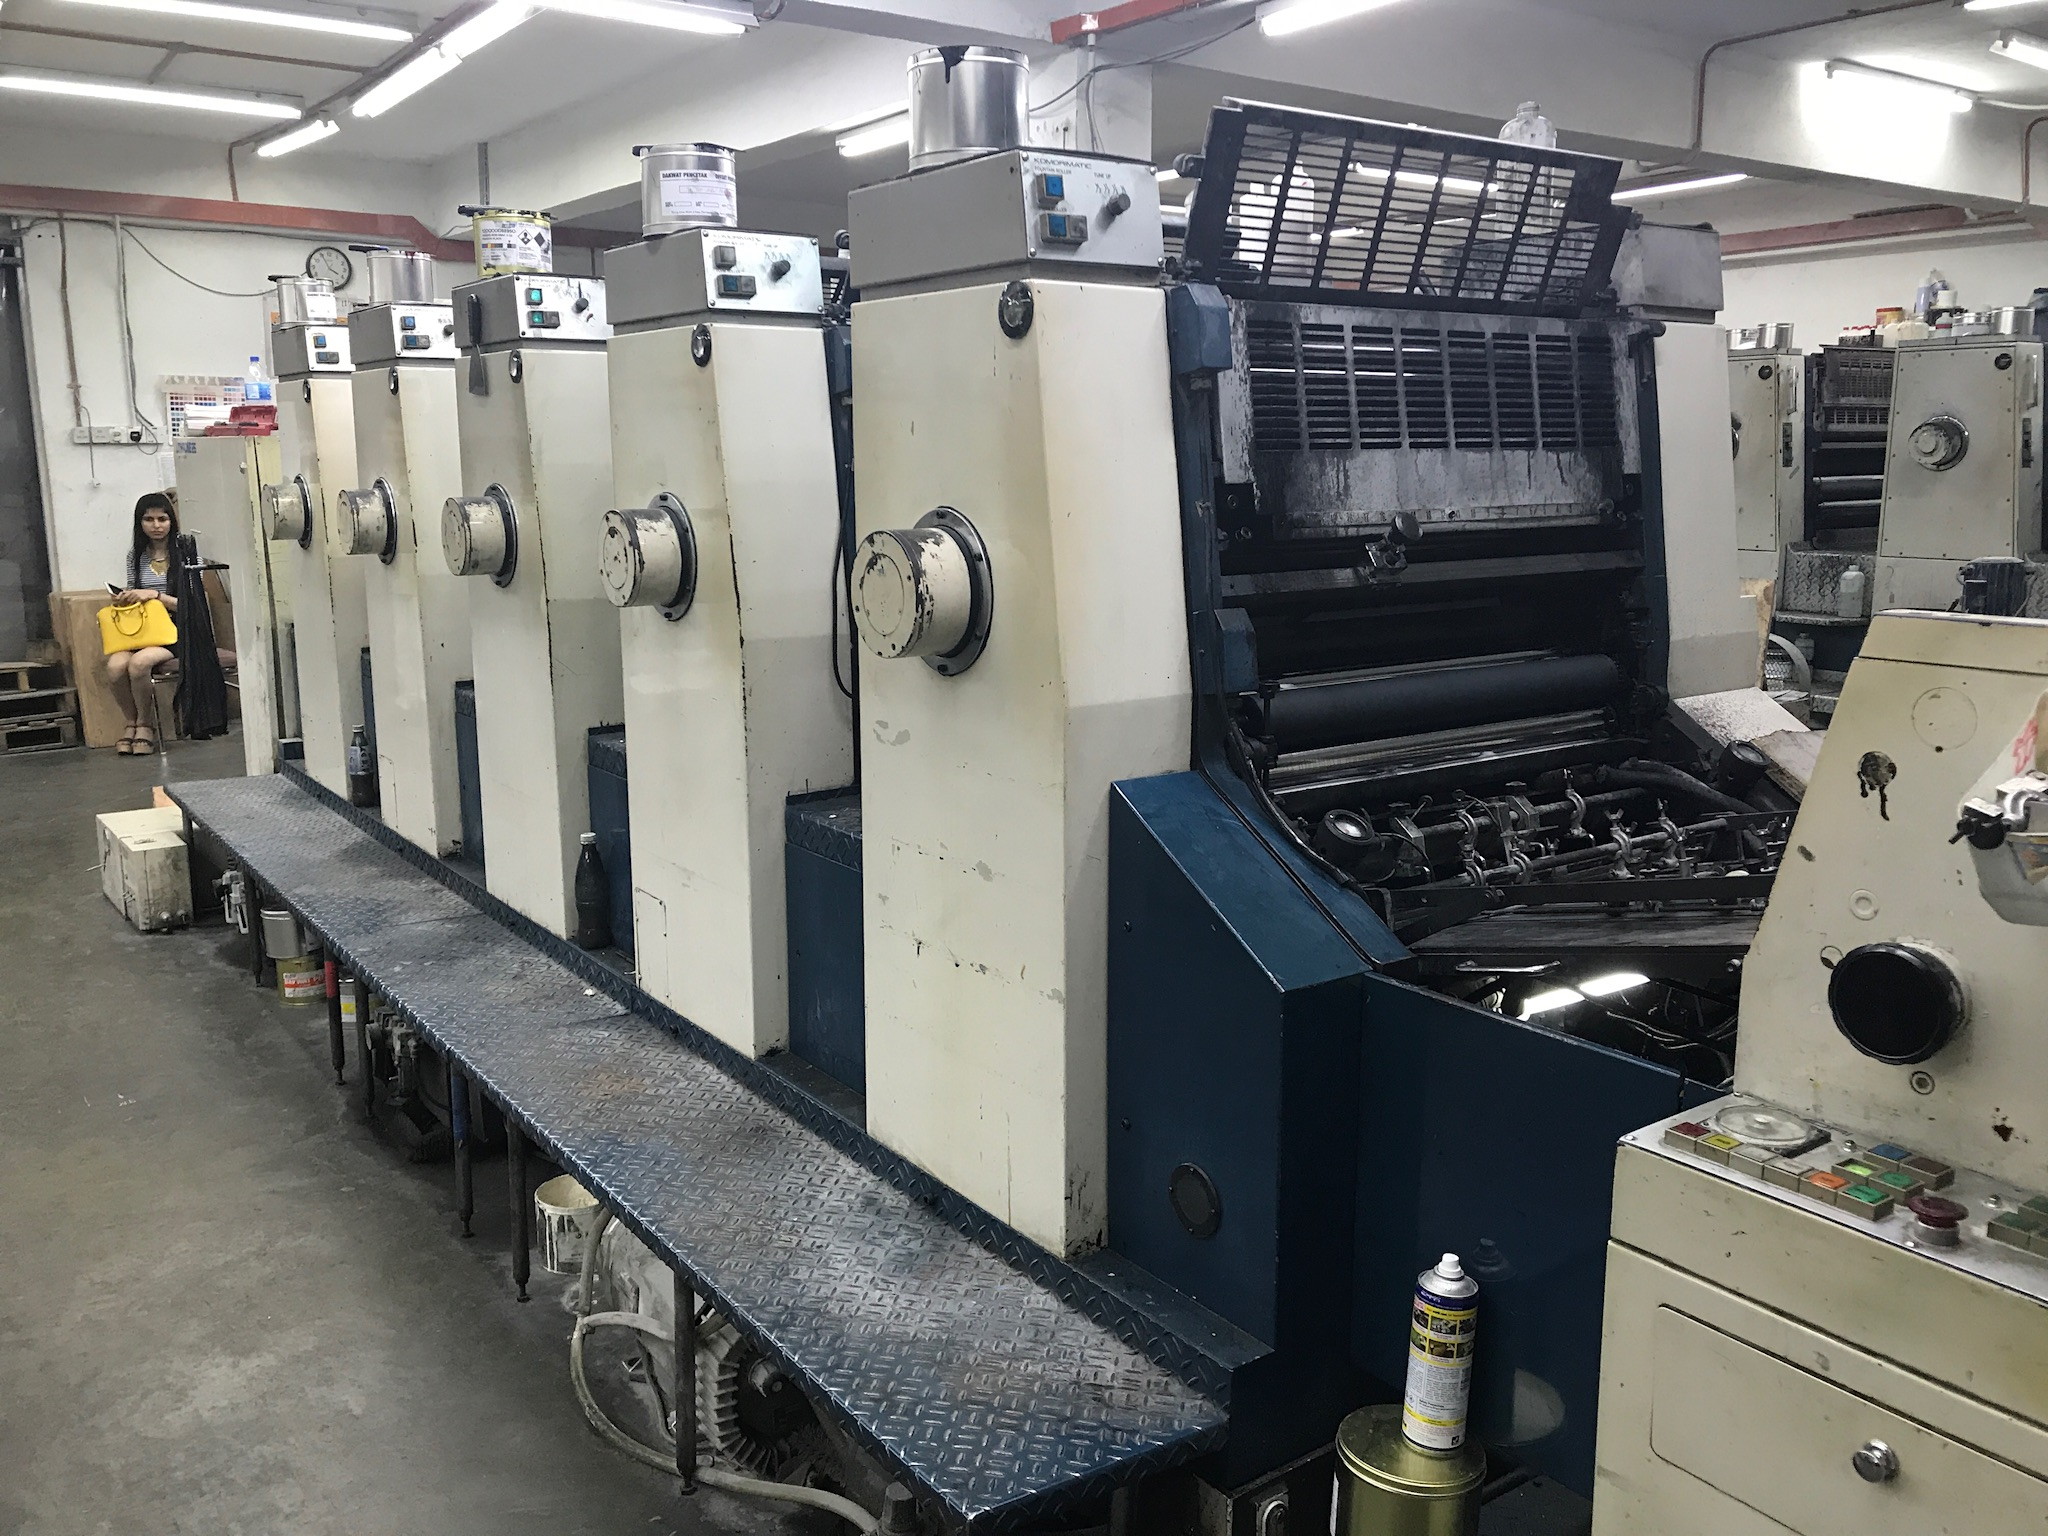 Five Colour Offset Printing Machine Komori L 532 Suppliers in Haryana